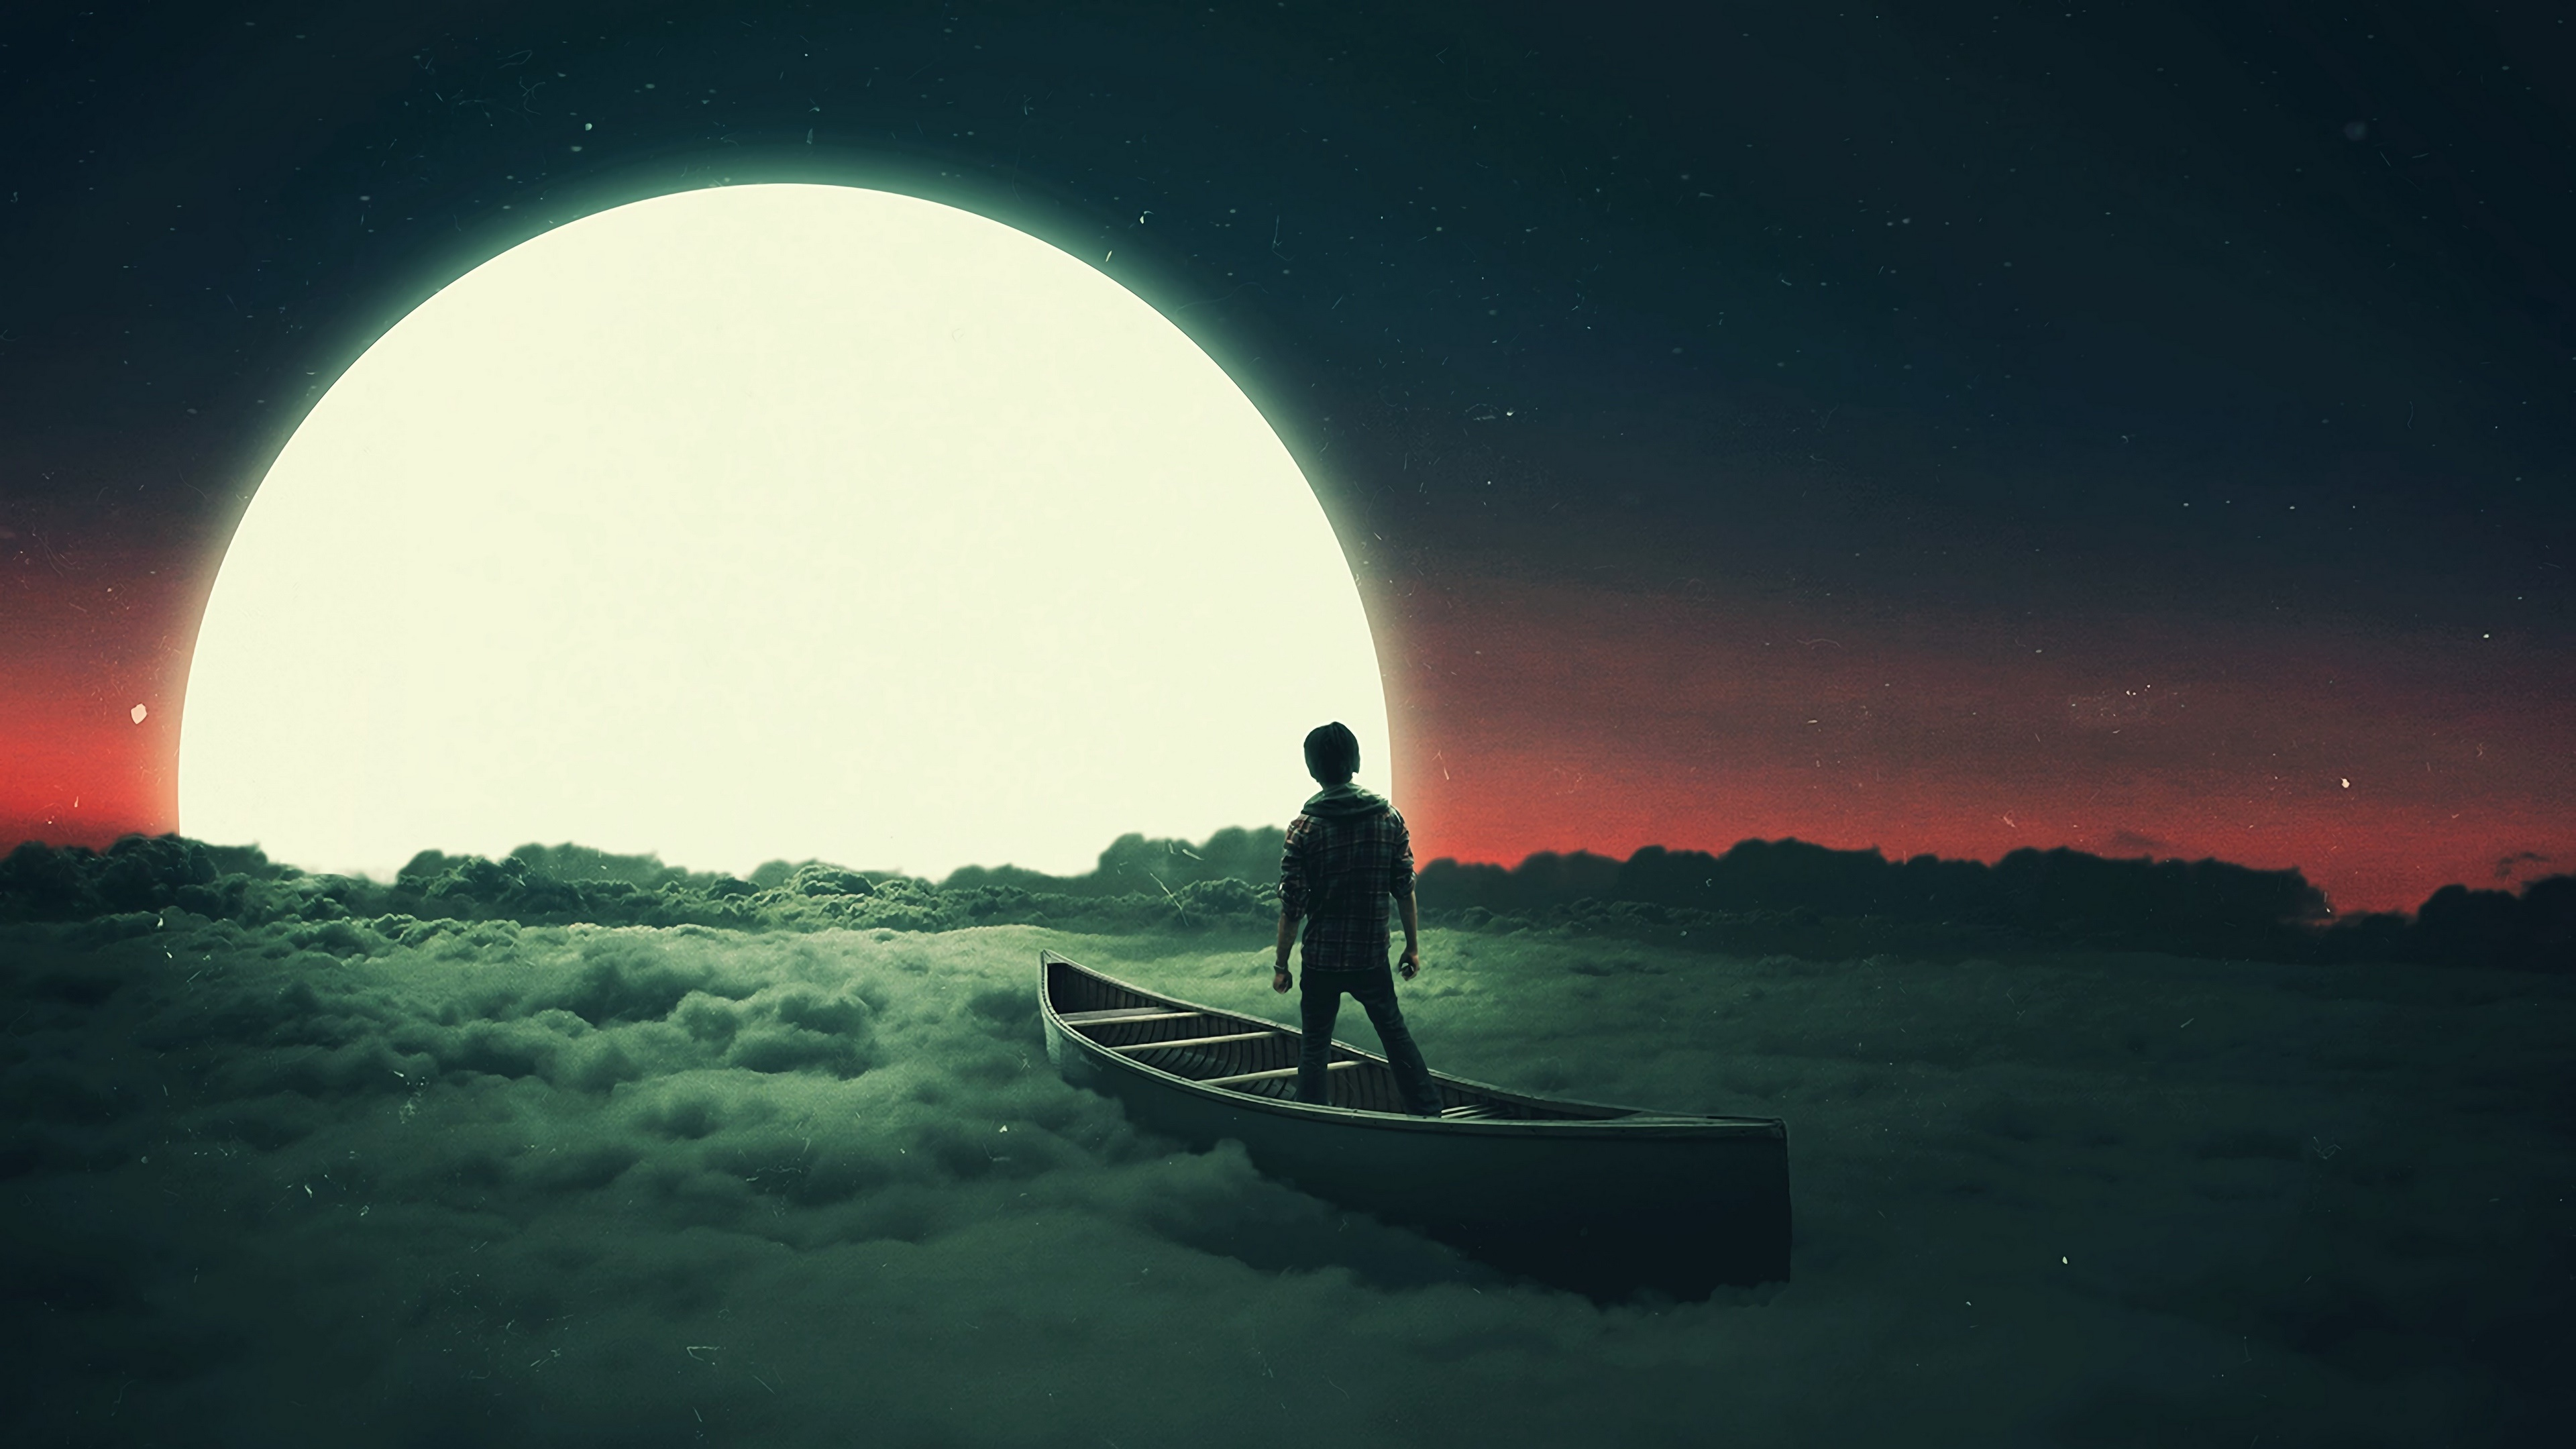 Boating on the sea of clouds at full moon wallpaper